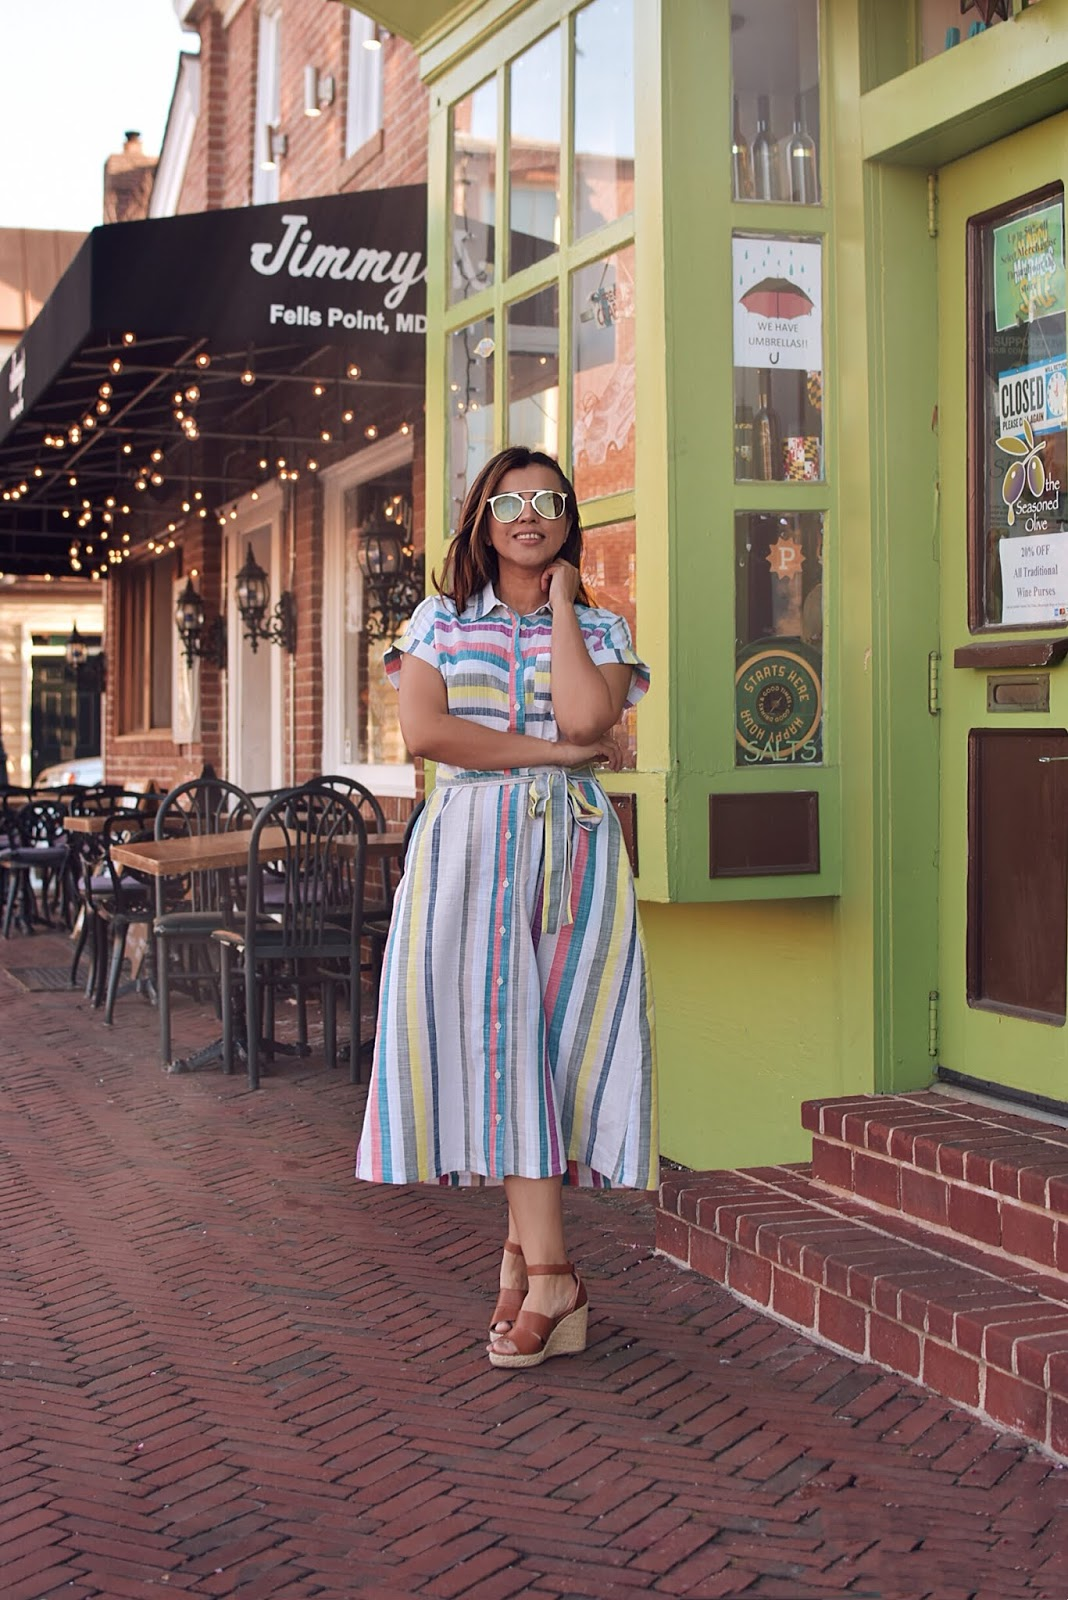 In trend-In my style-this spring-mariestilo-walmart-baltimore-maryland-travel blogger-dcblogger-streetstyle-fashion-fashionblog-